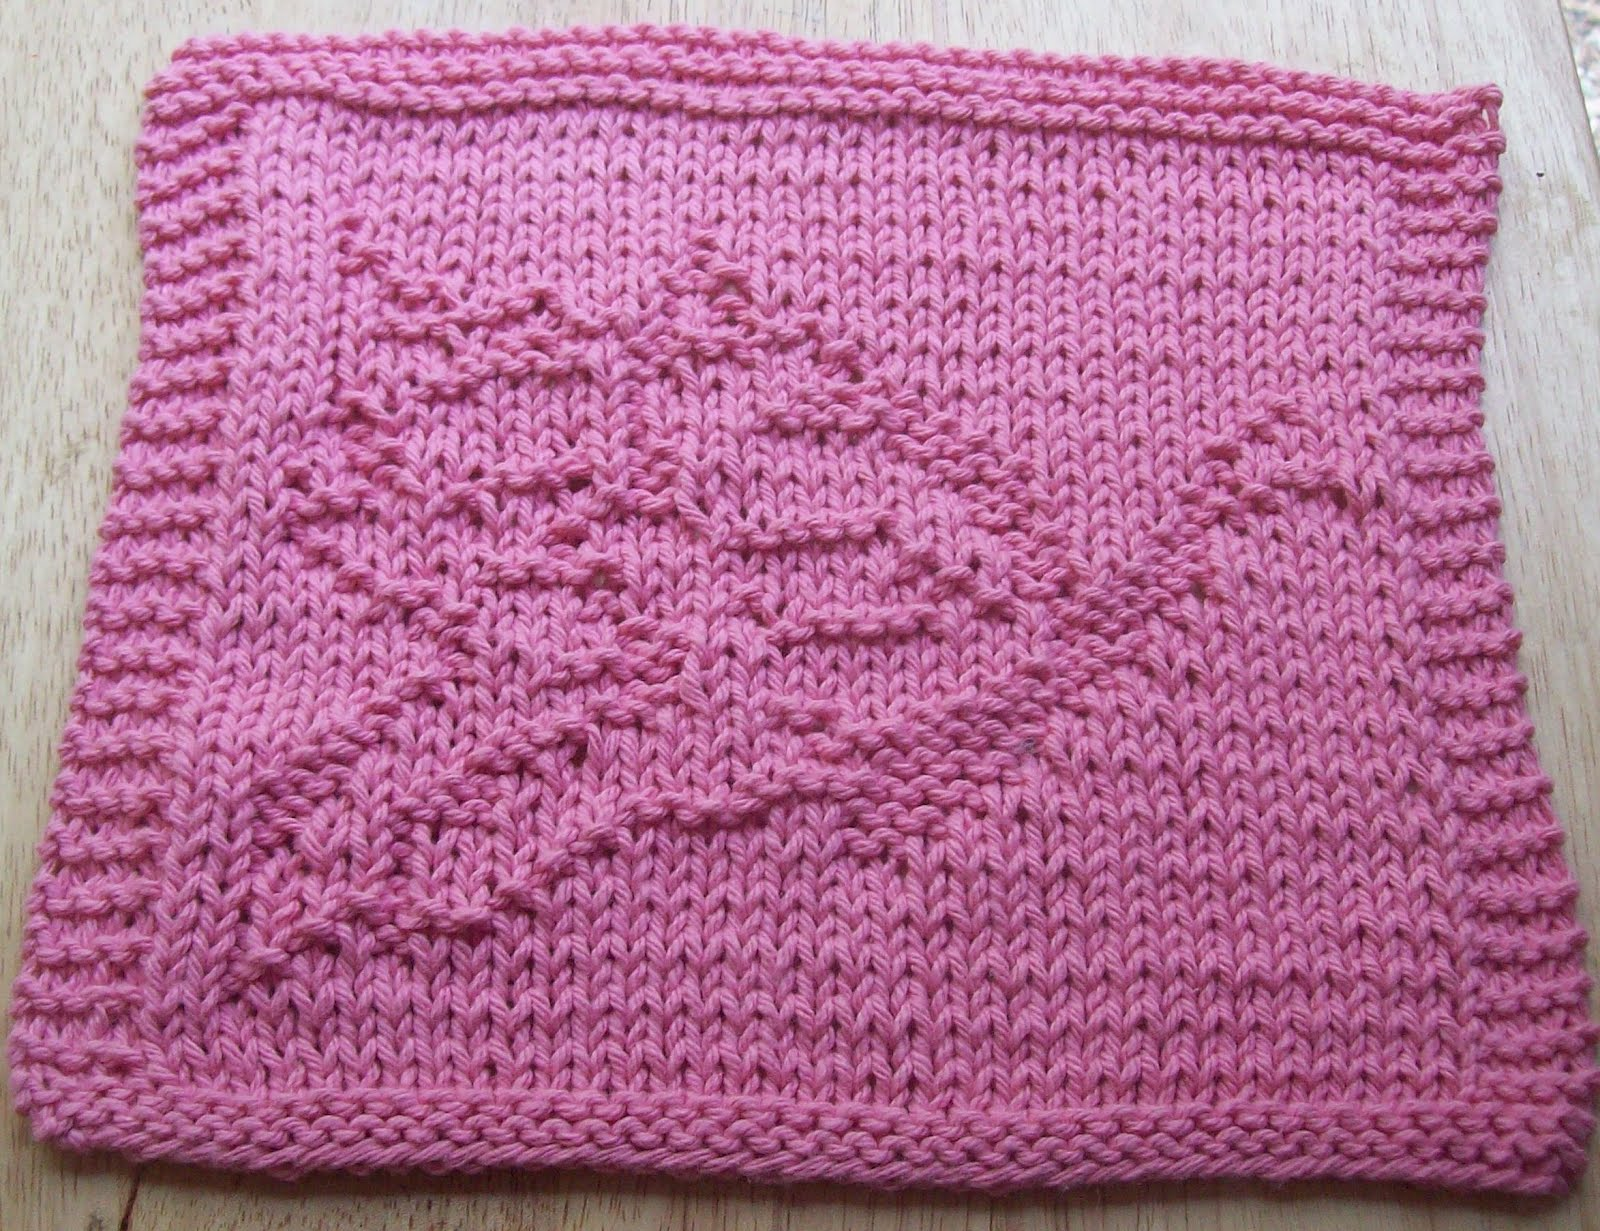 Pattern Knitted Dishcloth : DigKnitty Designs: Another Butterfly Knit Dishcloth Pattern